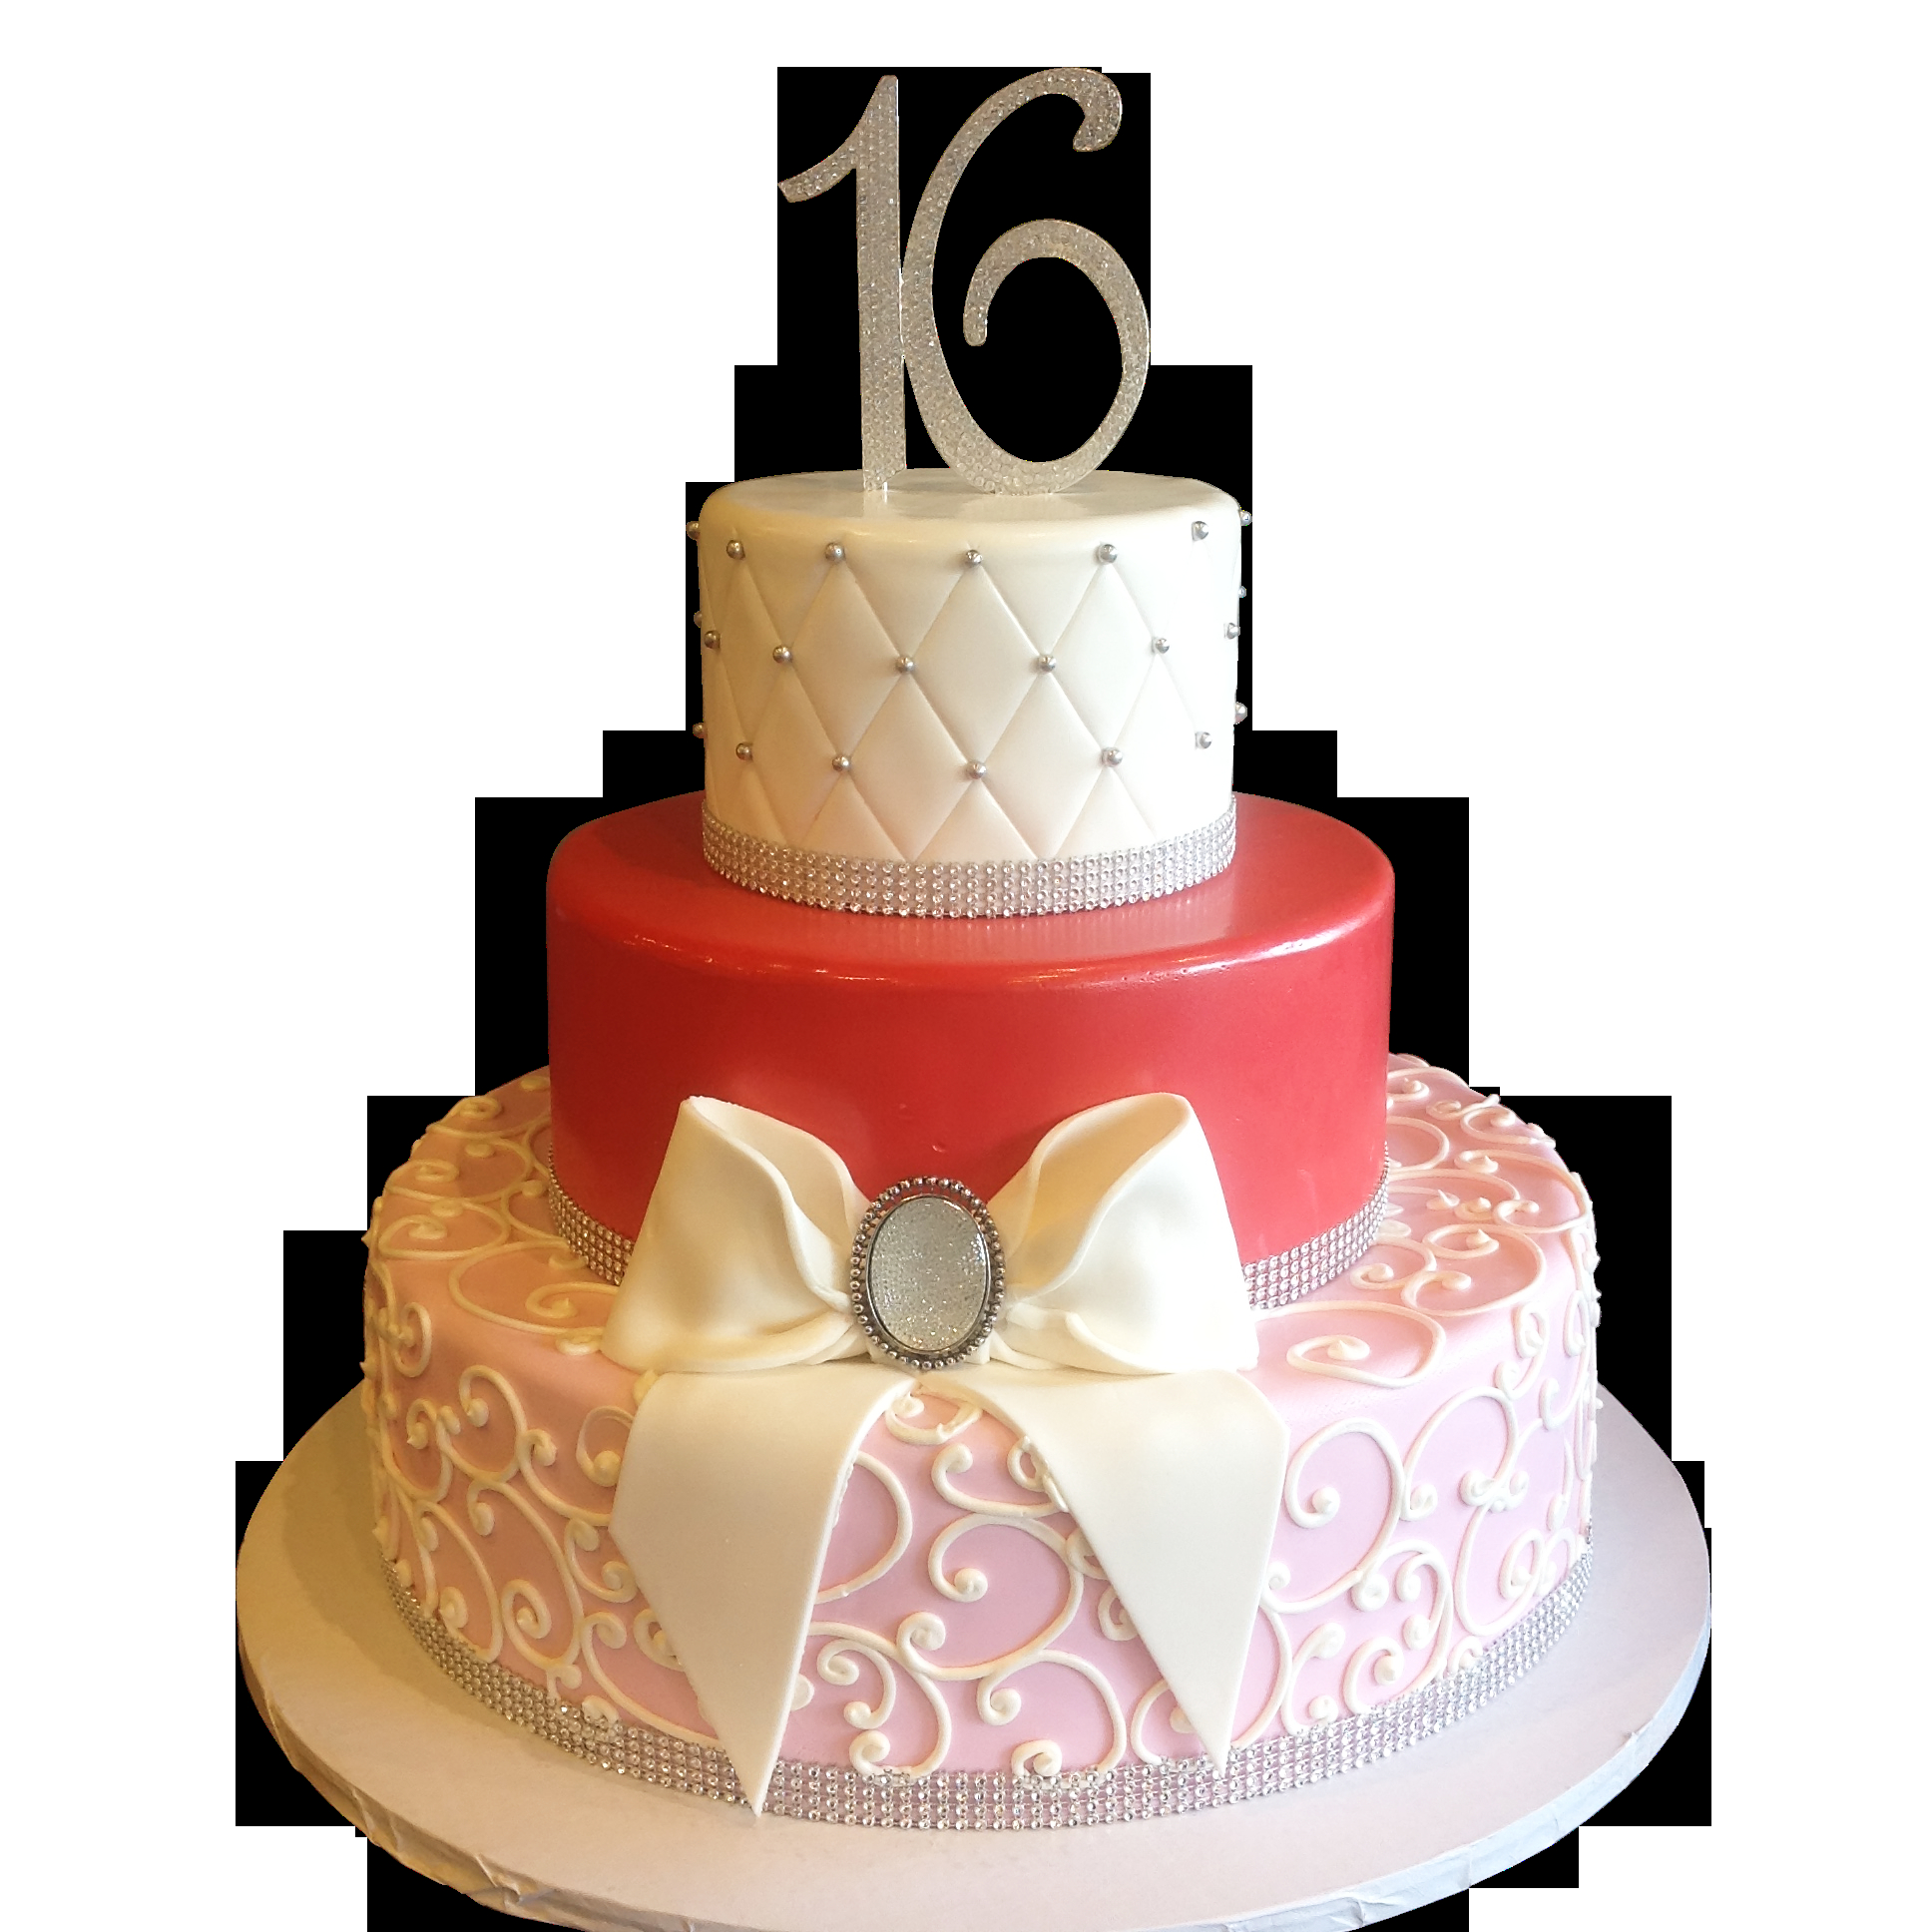 Sweet 16 Birthday Cake Elegant Sweet 16 Birthday Cakes In Nyc